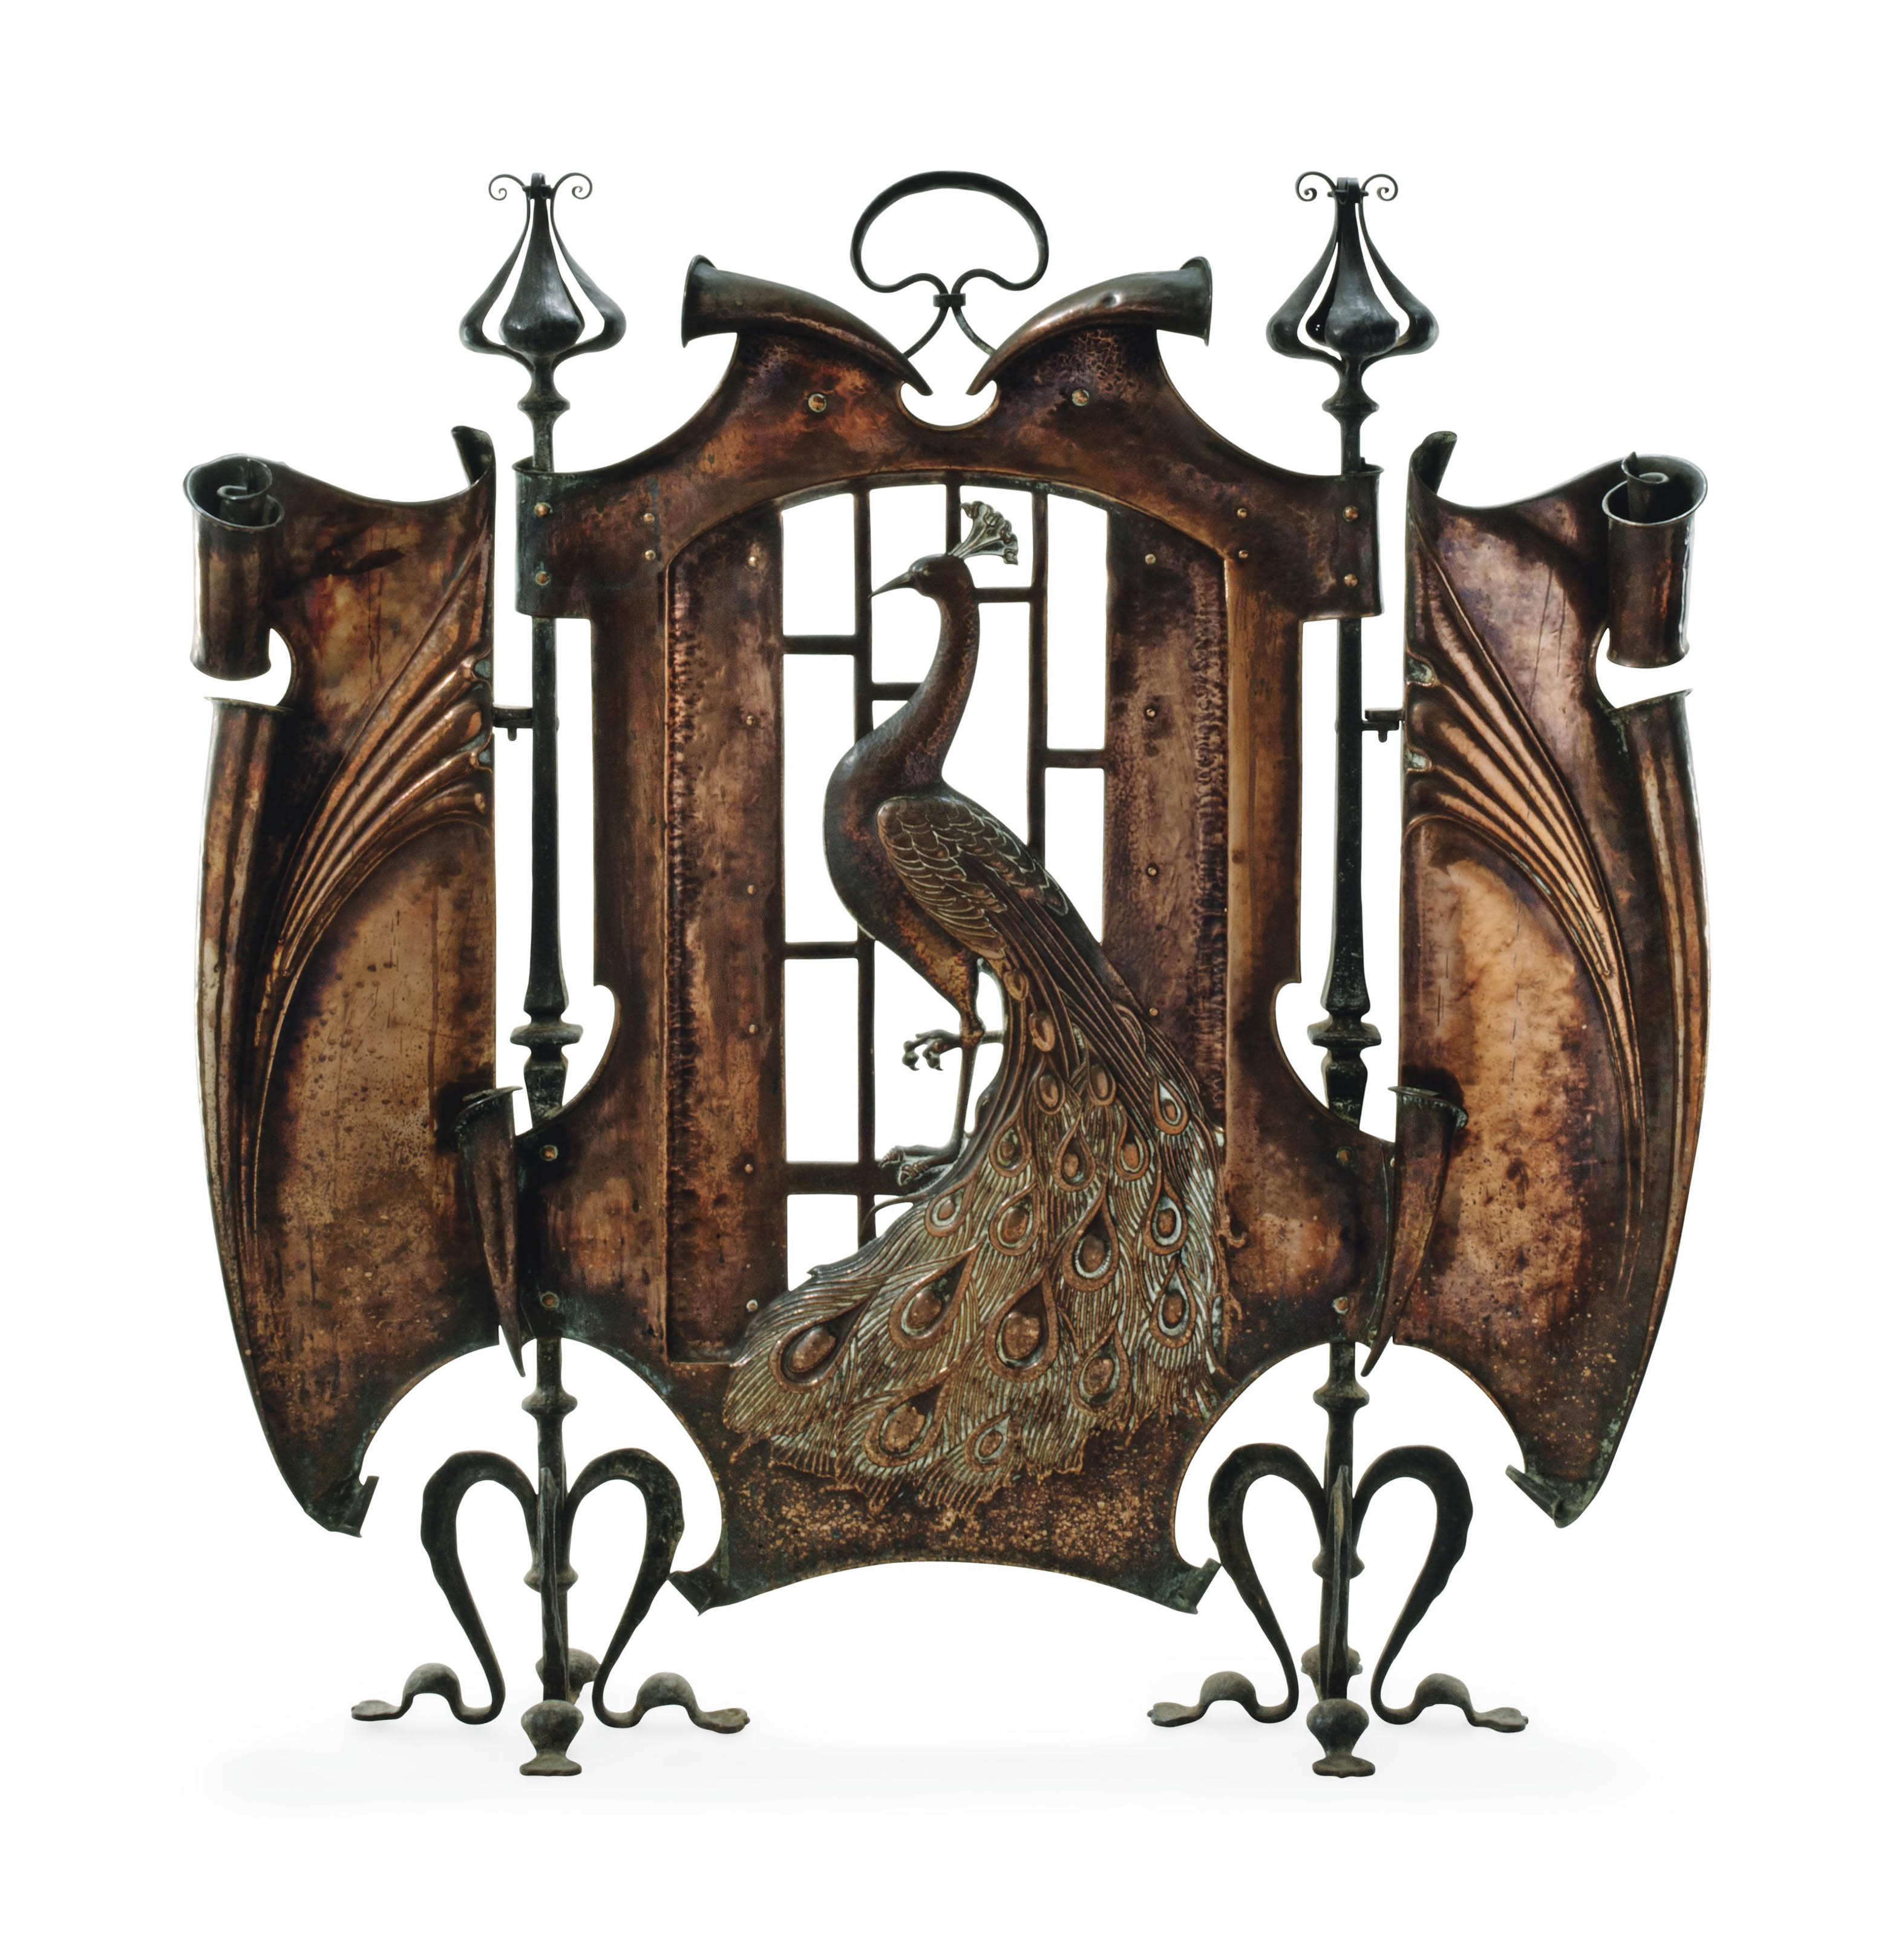 AN ARTS AND CRAFTS COPPER AND WROUGHT-IRON FIRESCREEN